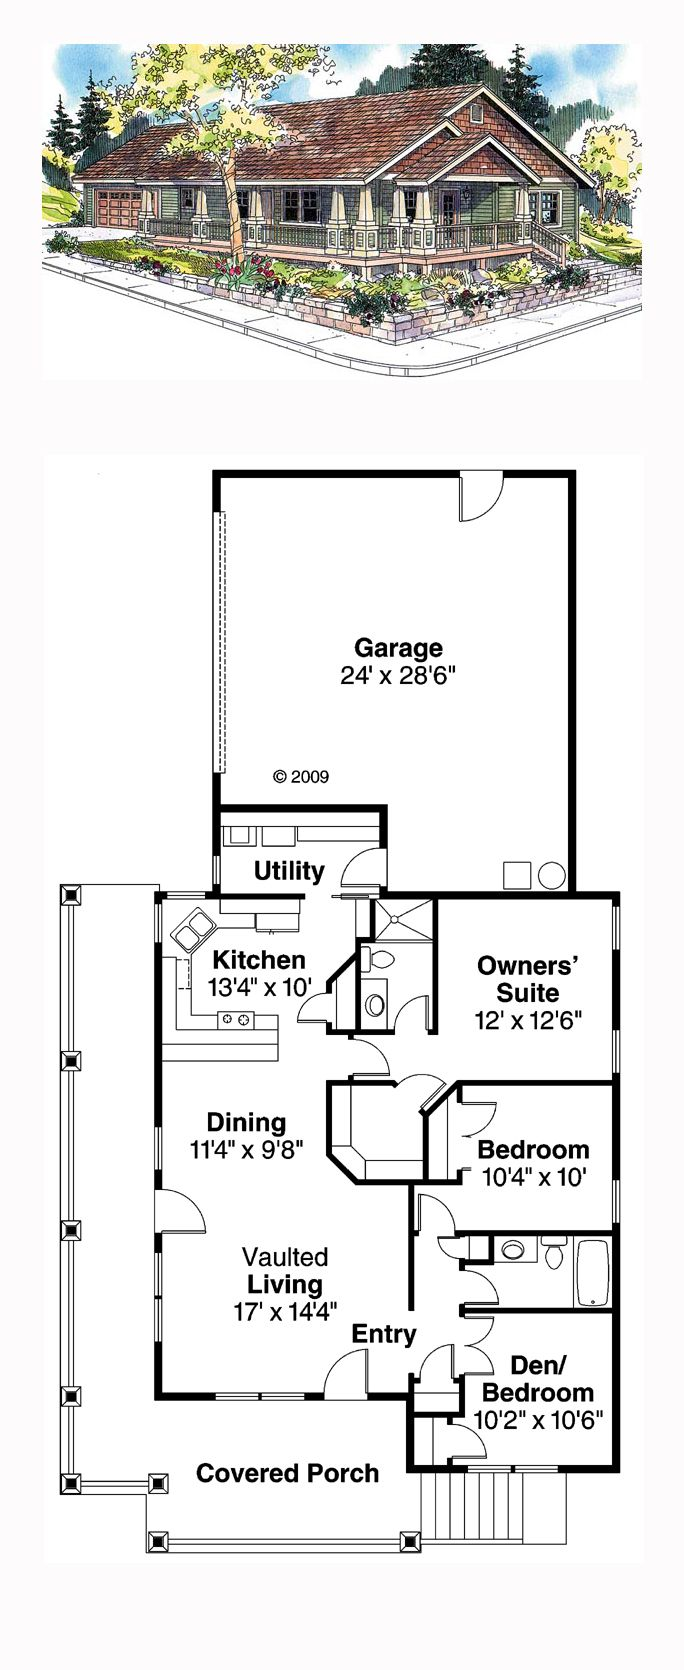 Ranch House Plan 59754 | Total Living Area: 1265 sq. ft., 3 bedrooms and 2 bathrooms. #ranchhome